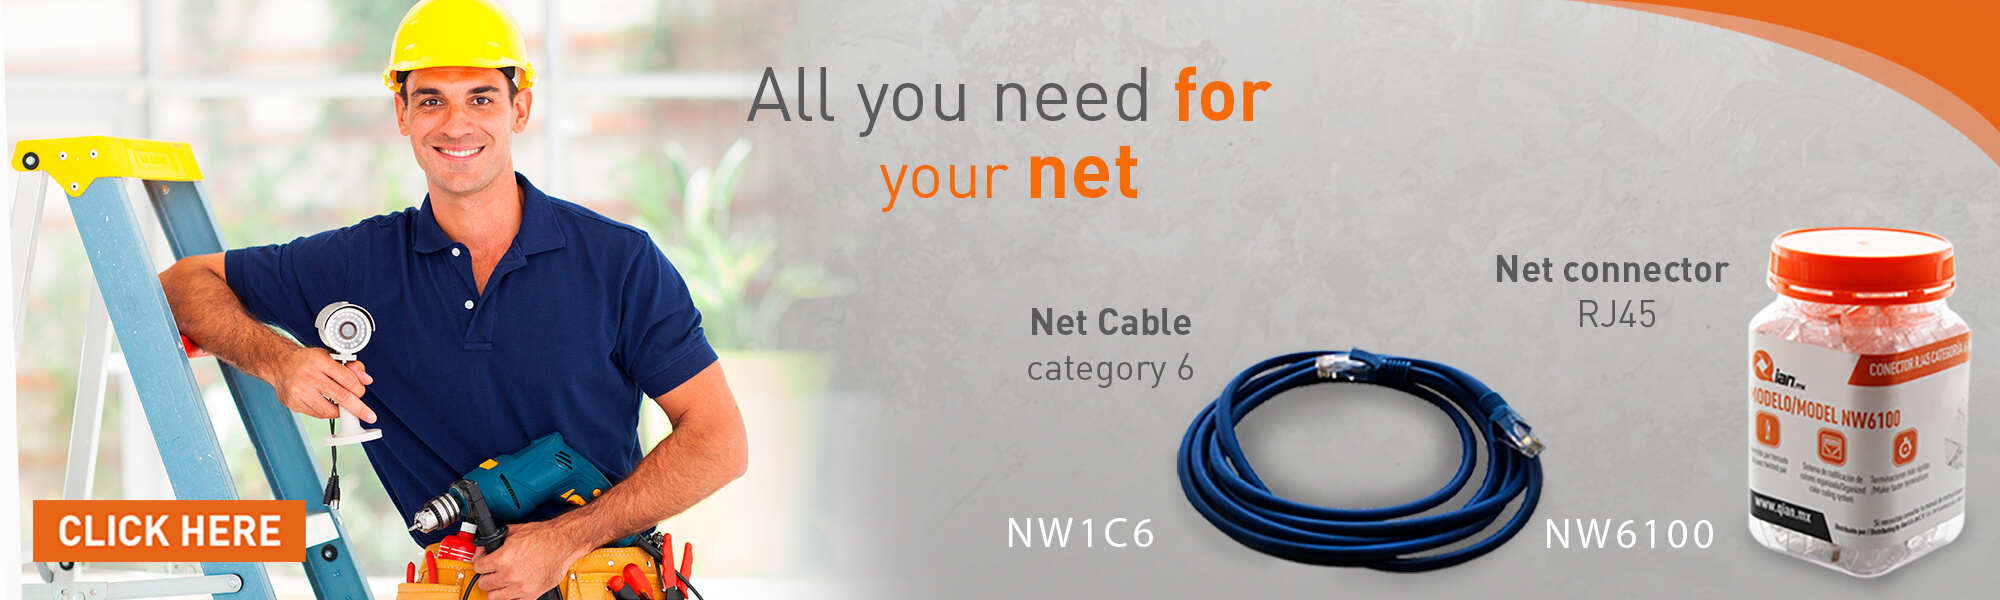 All you need for you net